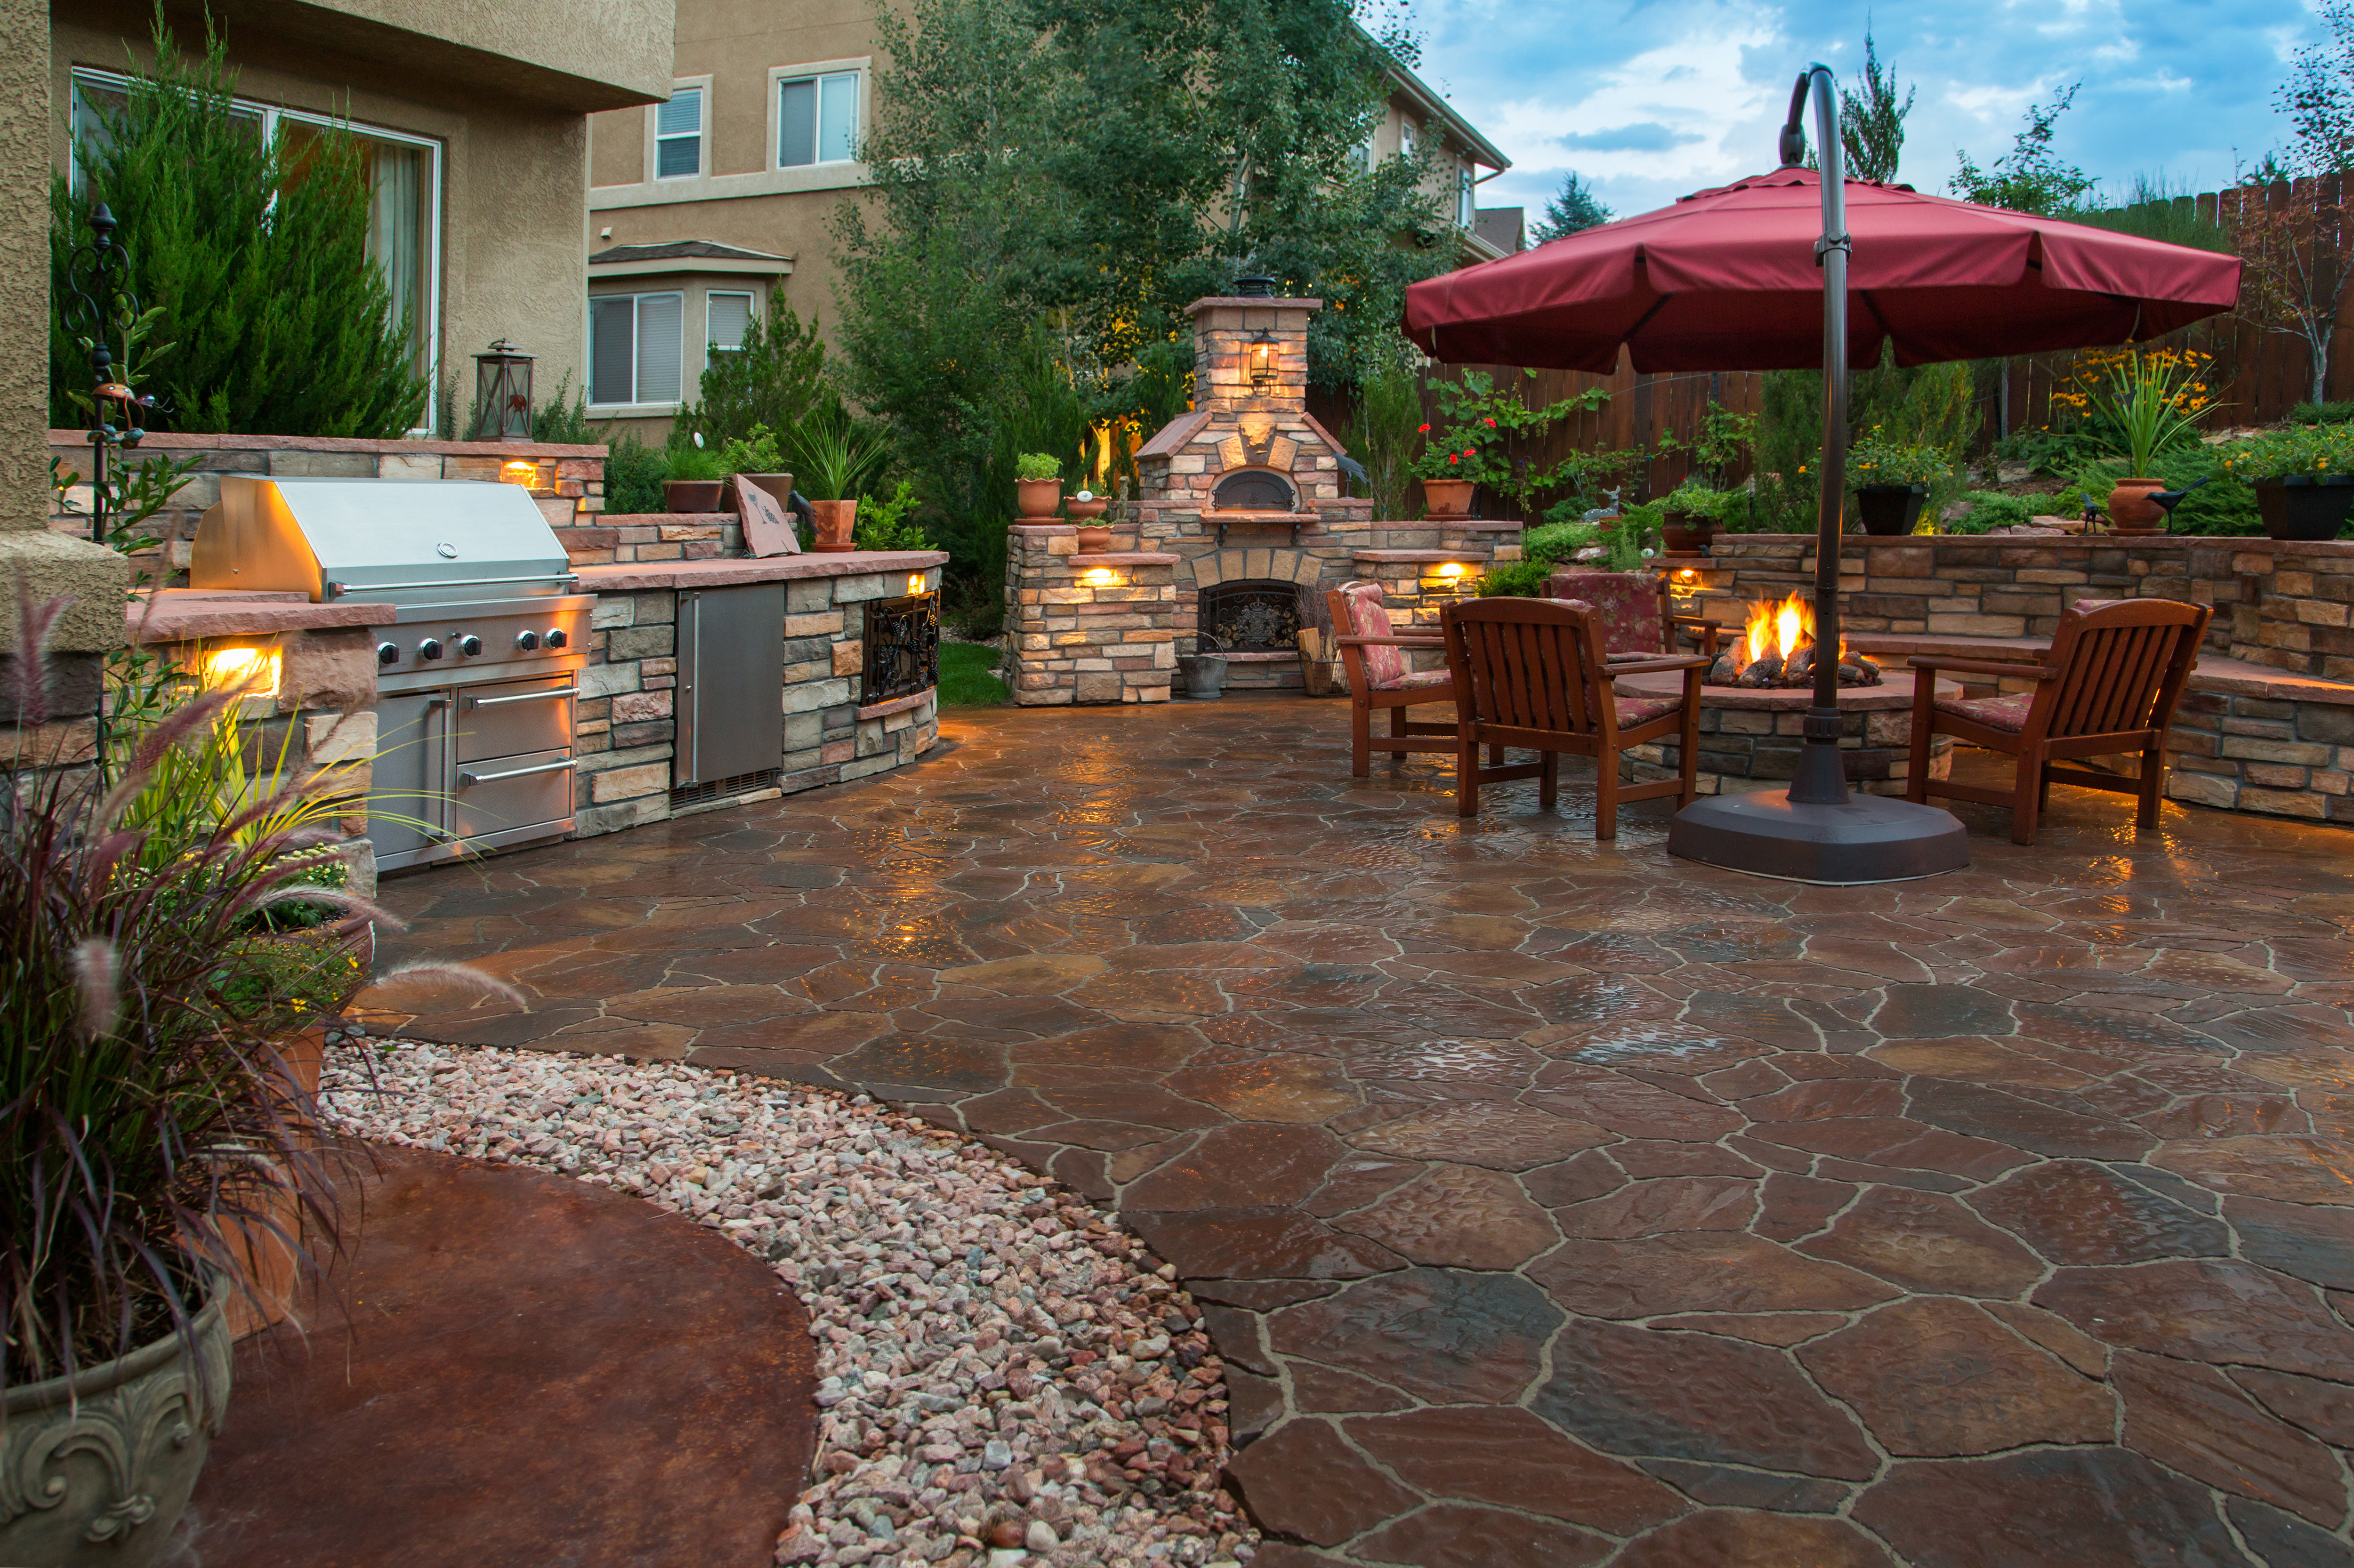 Garden Patio Design Ideas Lovetoknow